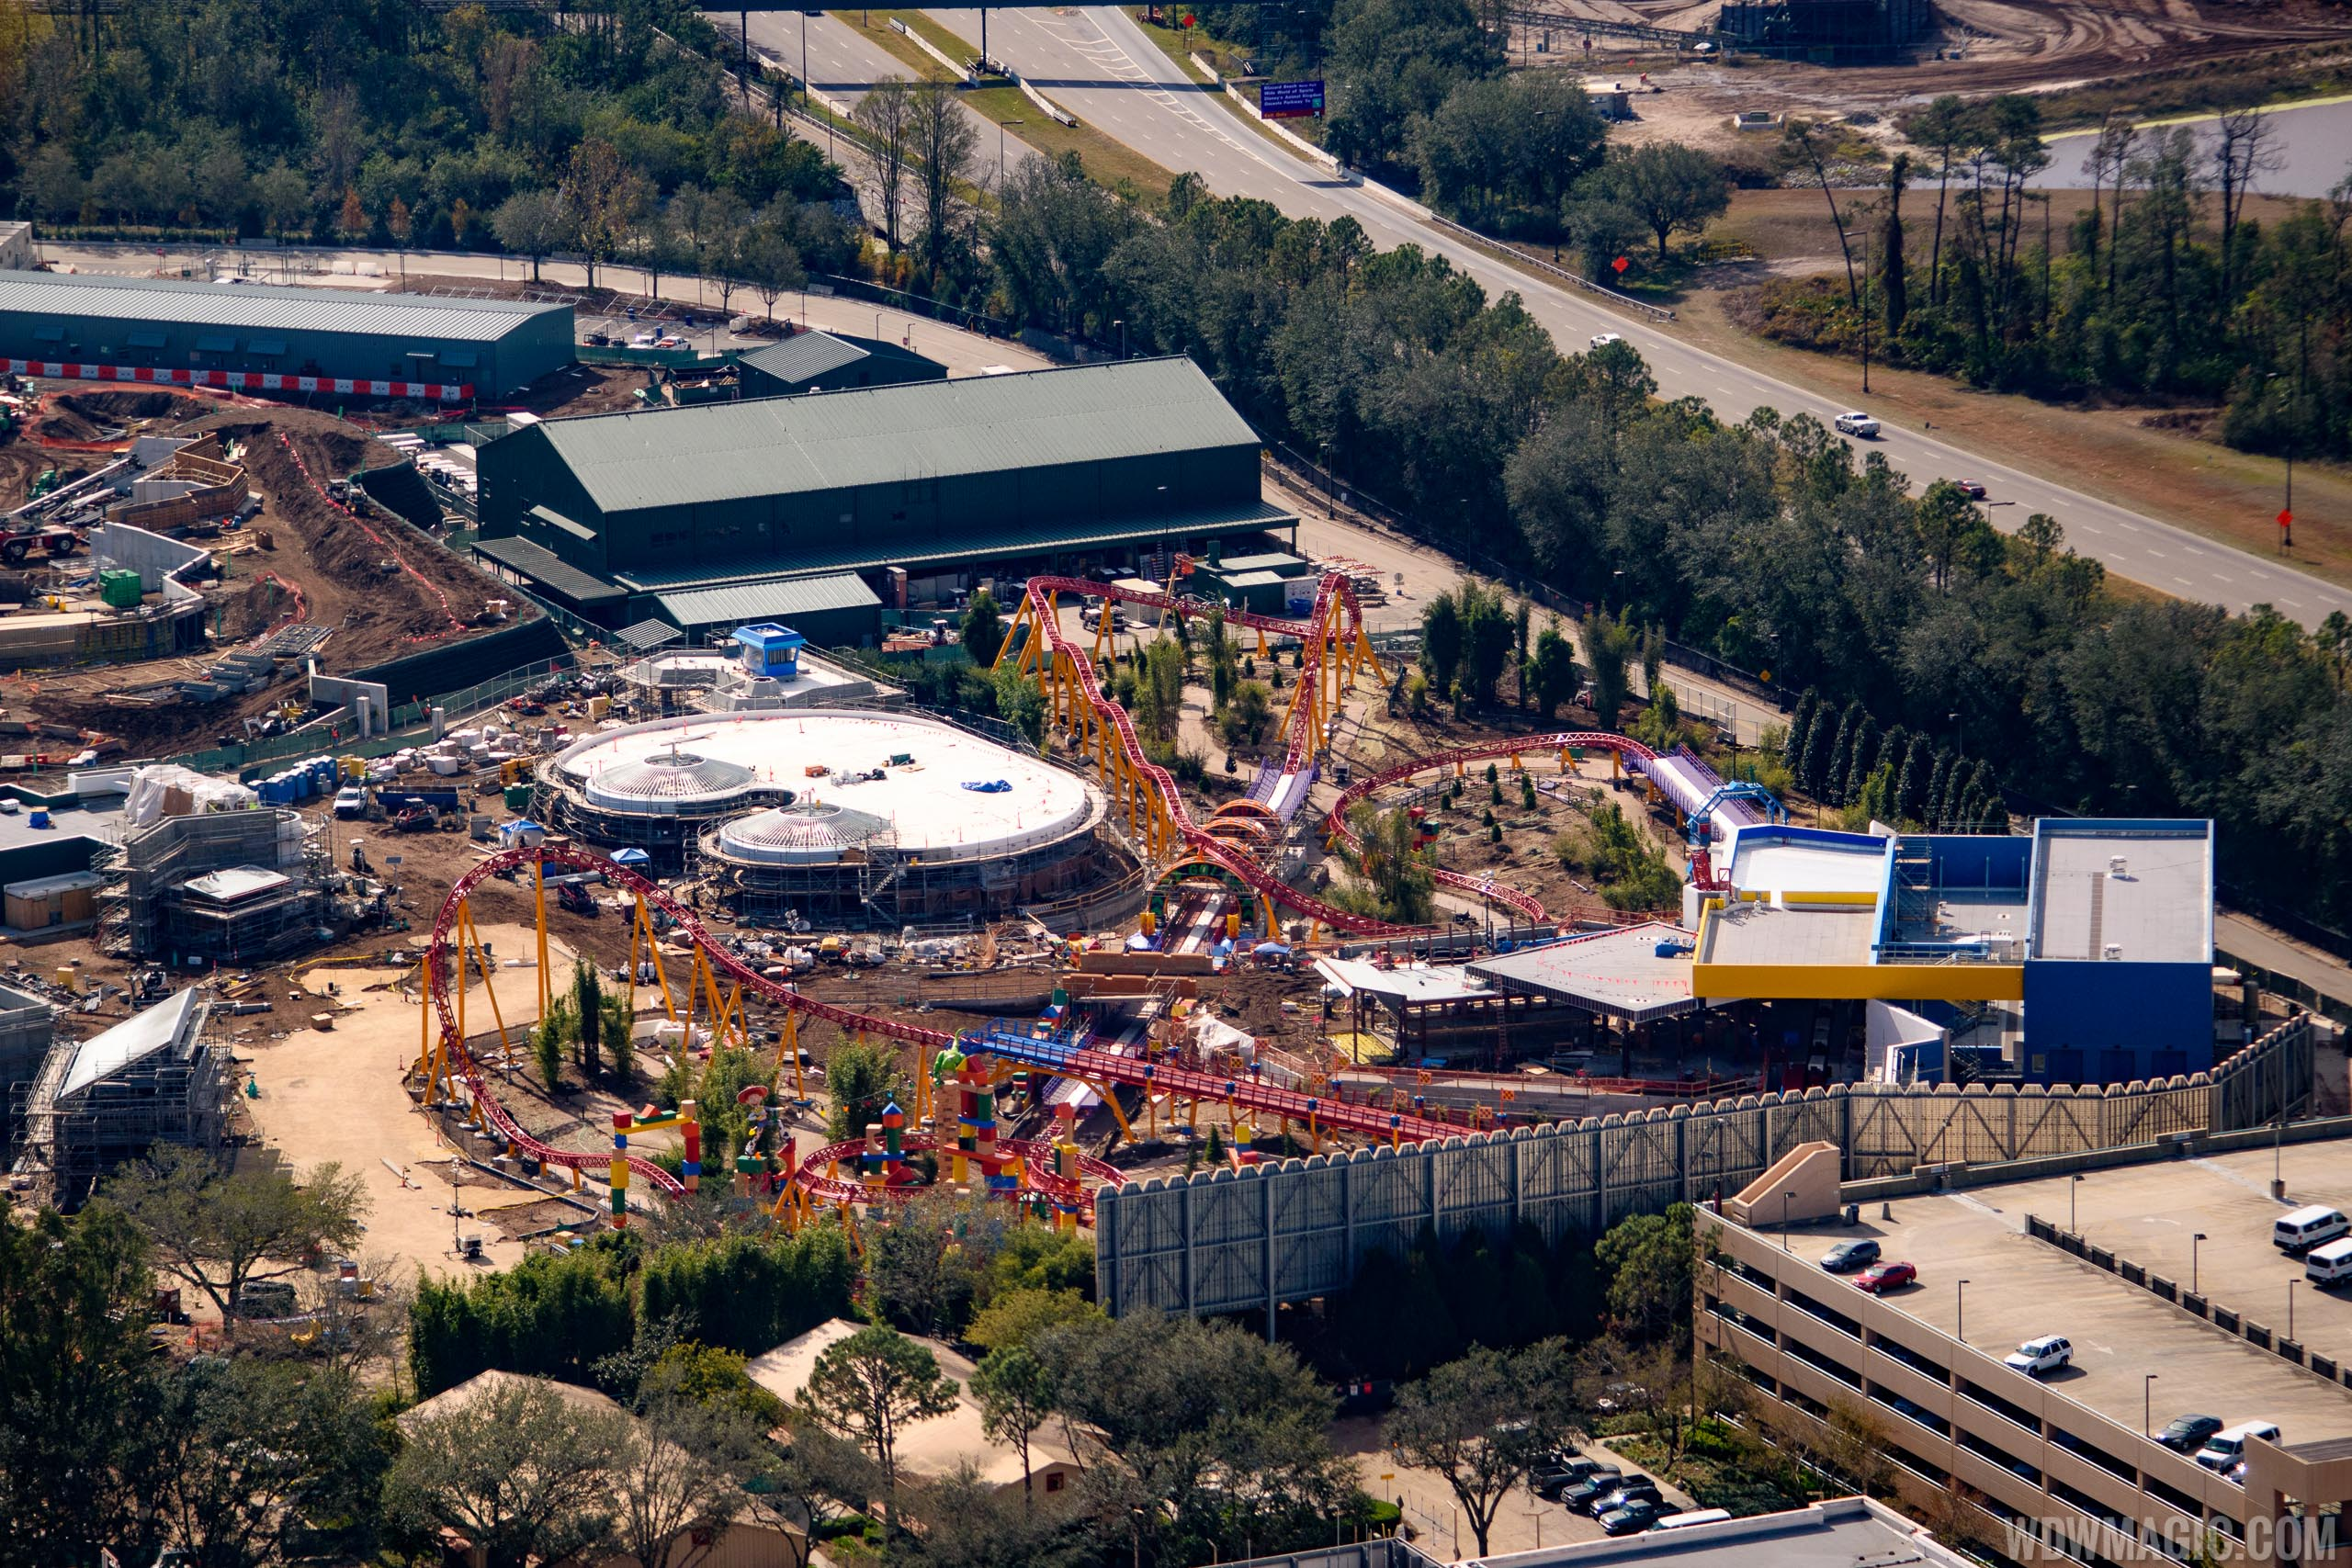 Toy Story Land wide view